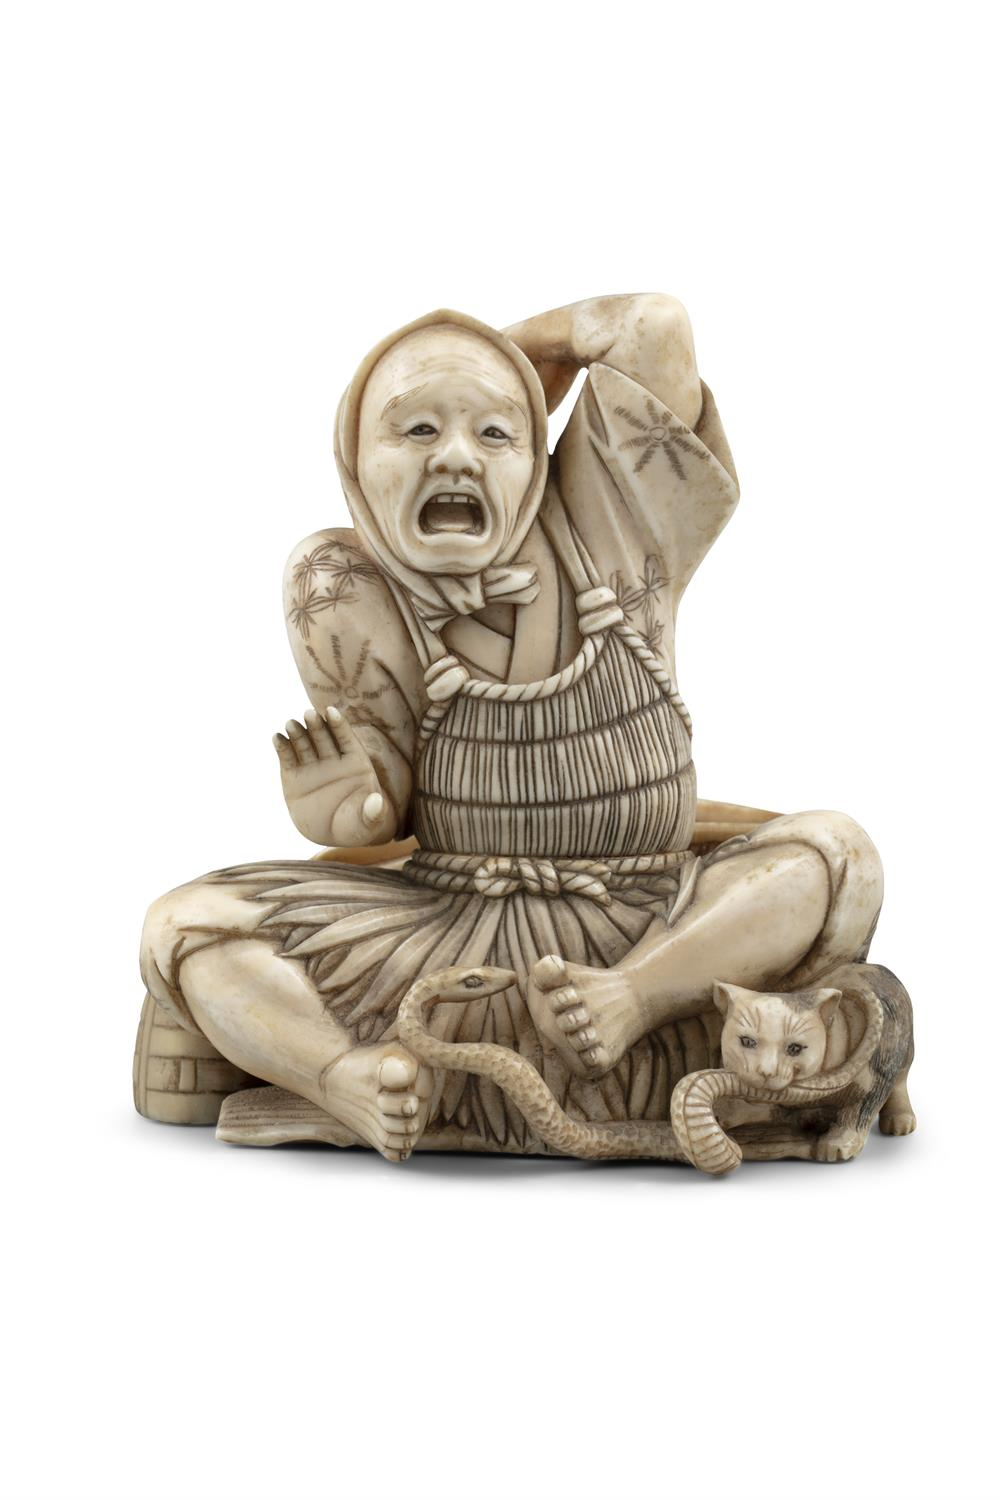 *MASAHIDE 正秀: A CARVED IVORY OKIMONO OF SCARED MAN WITH A CAT AND A SNAKE Japan, Meiji period, - Image 7 of 14